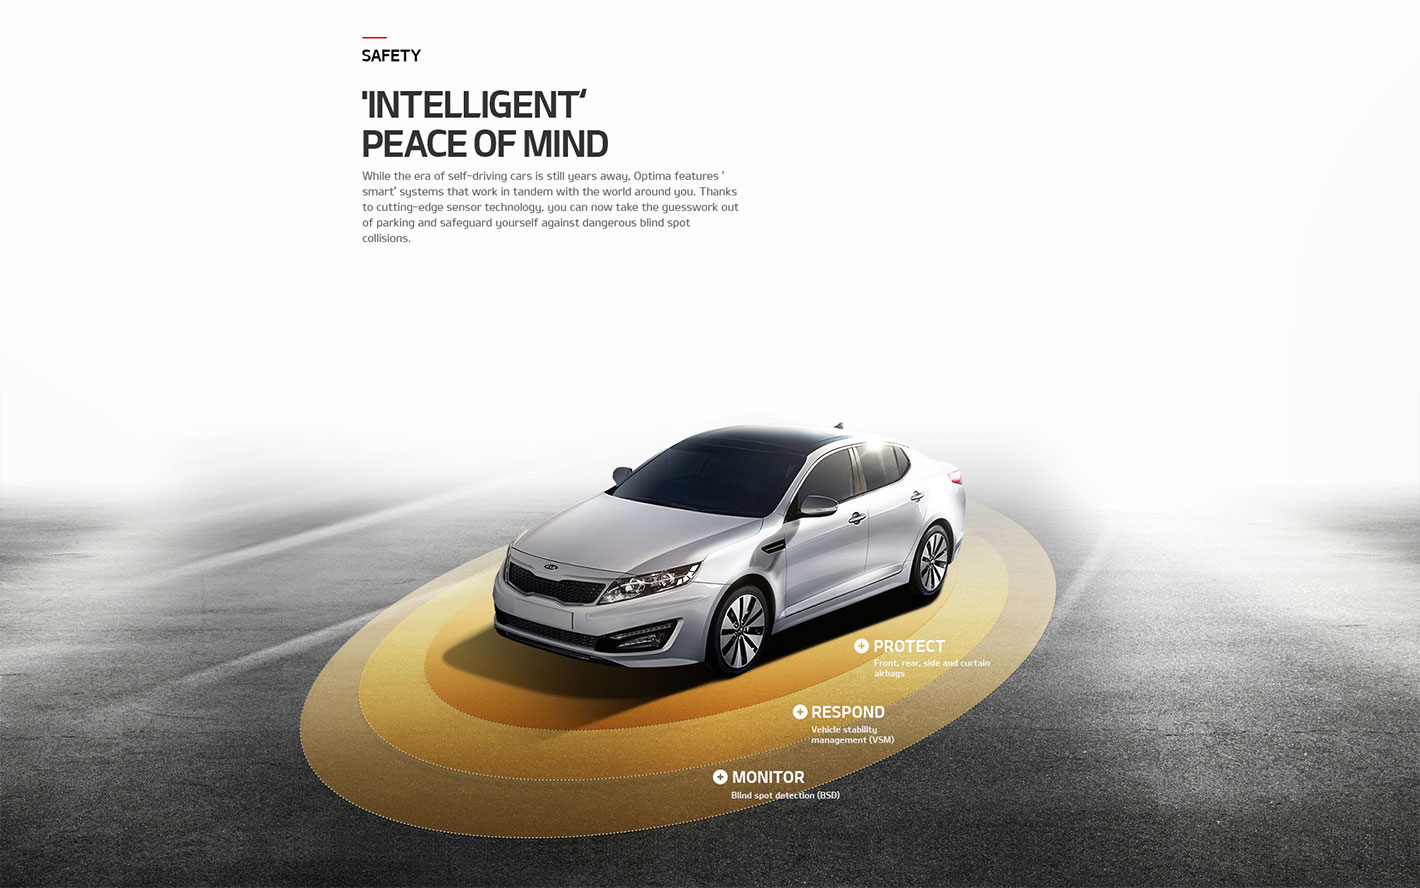 Web design illustrating Kia Motors' 'intelligent' peace of mind feature